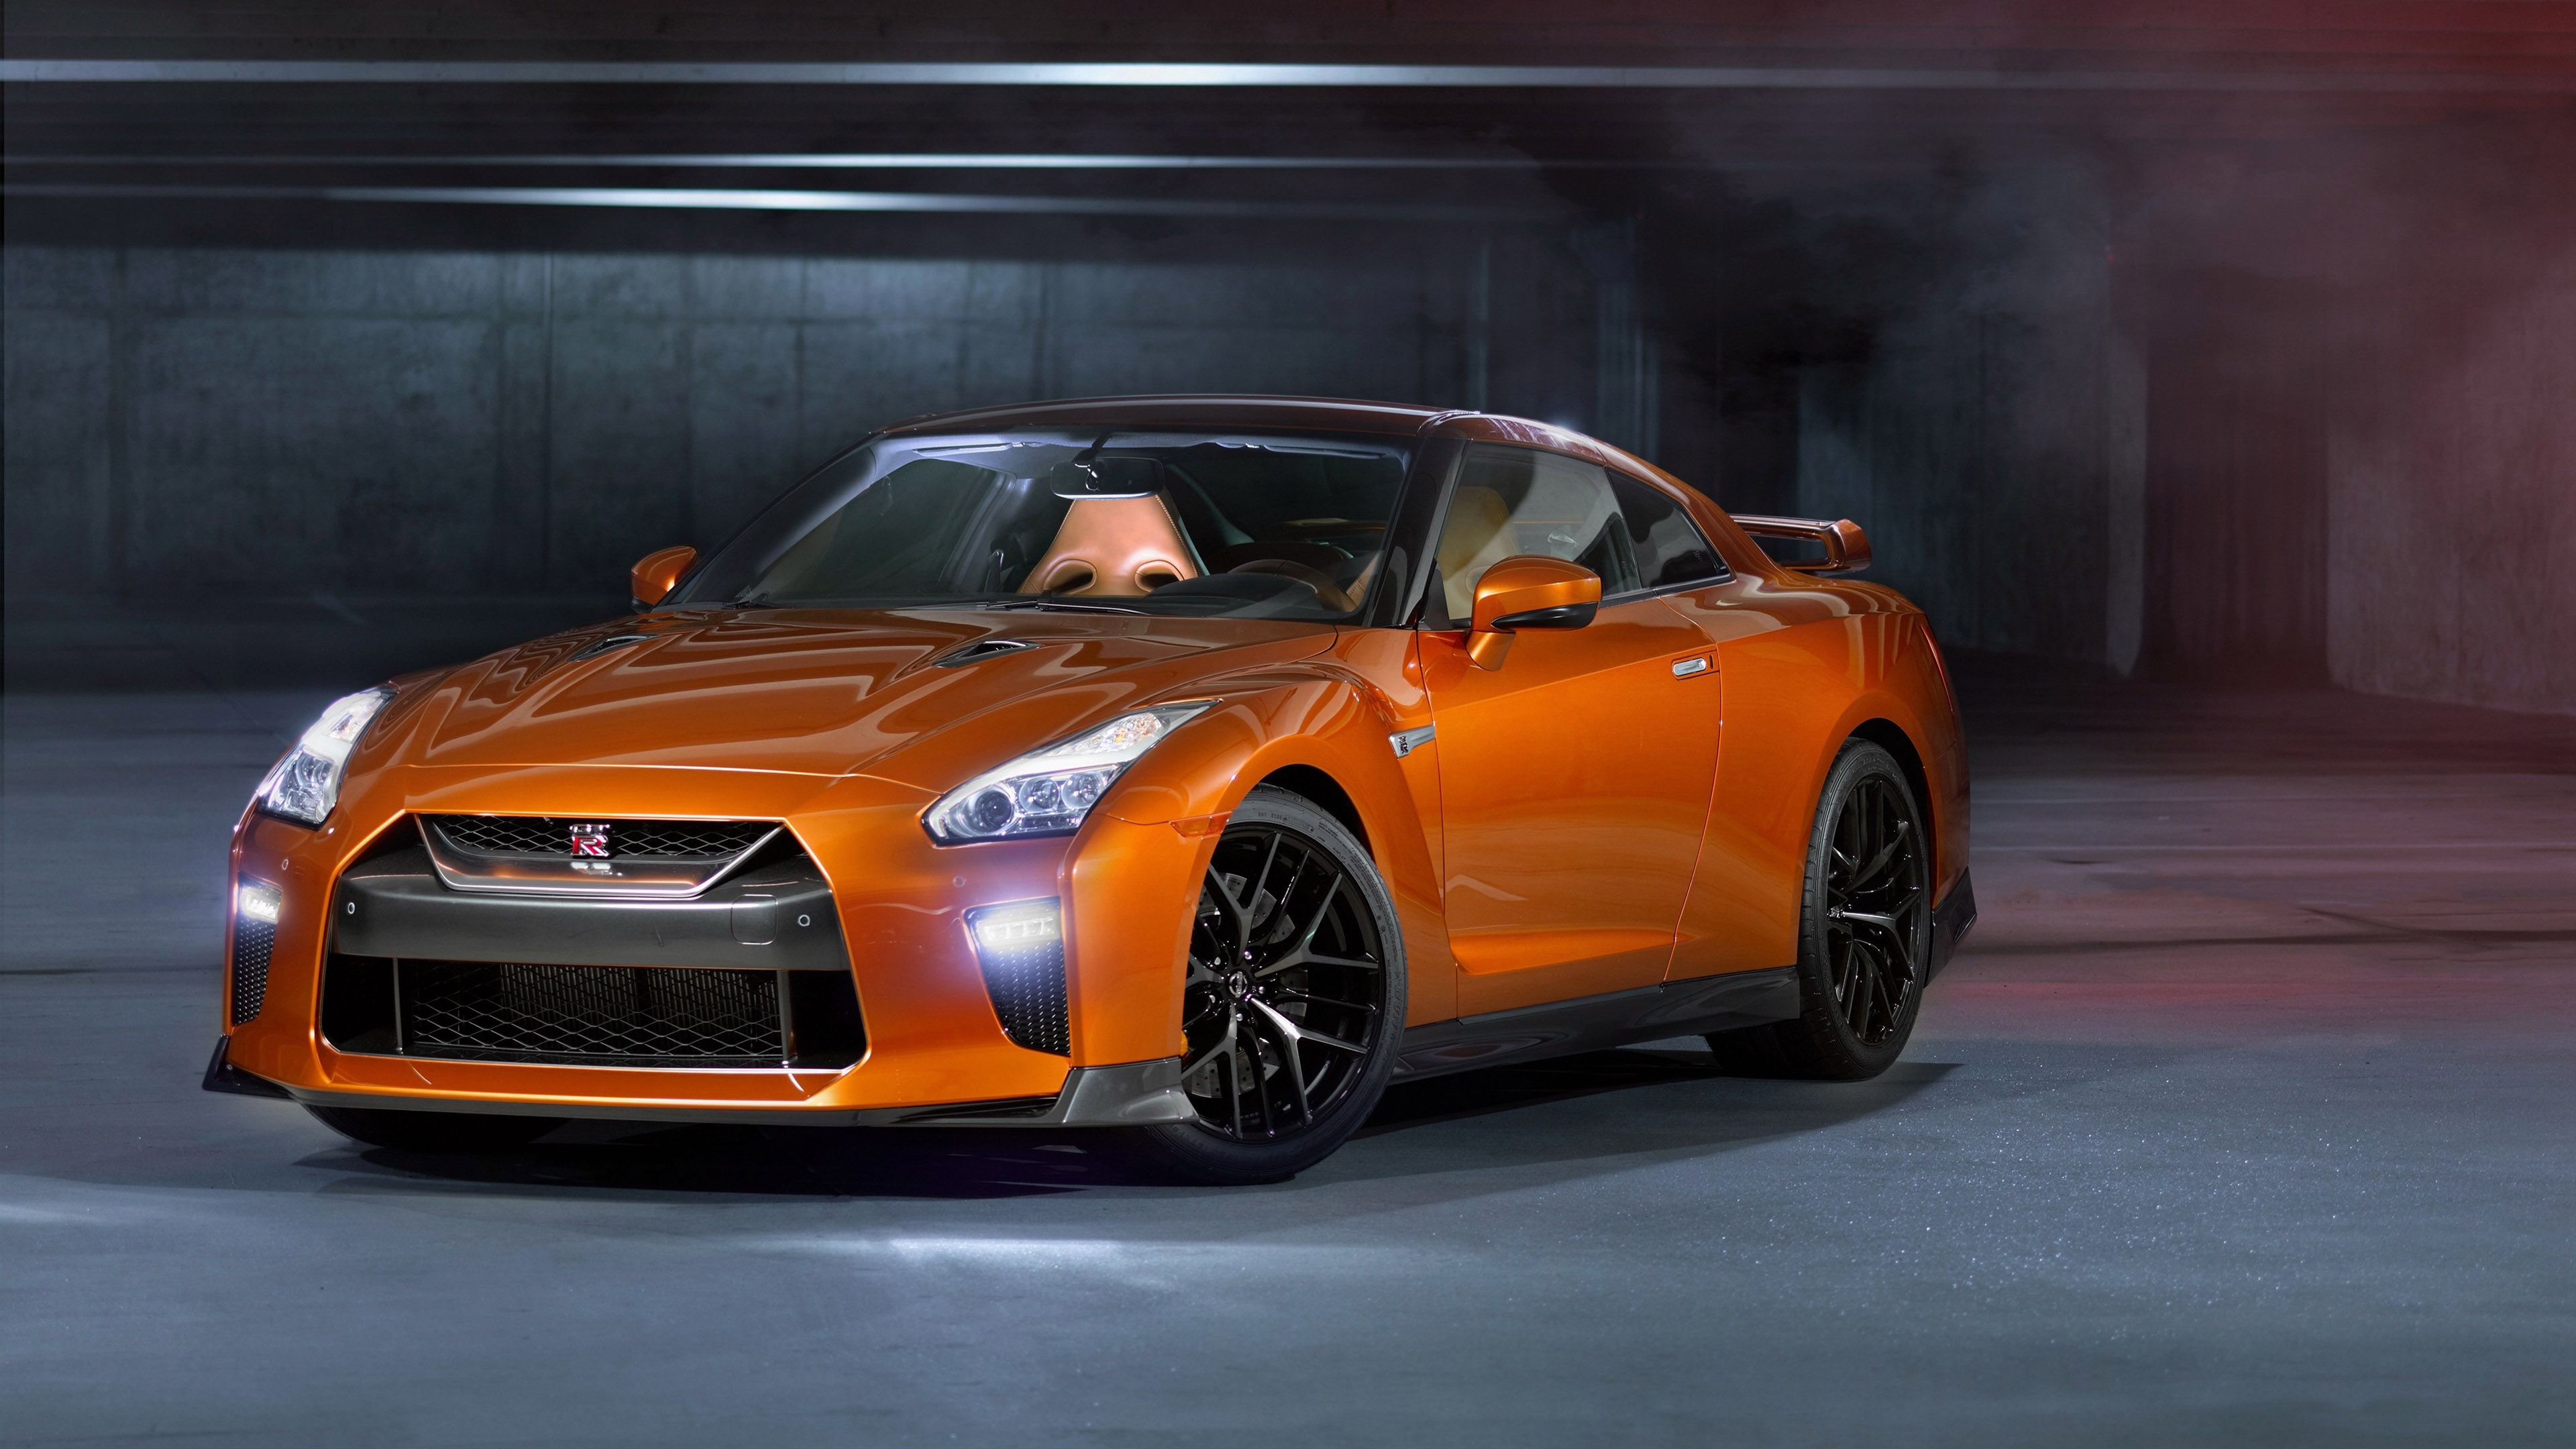 Wallpaper 4k 2017 Nissan Gtr Orange 2017 Cars Wallpapers Cars